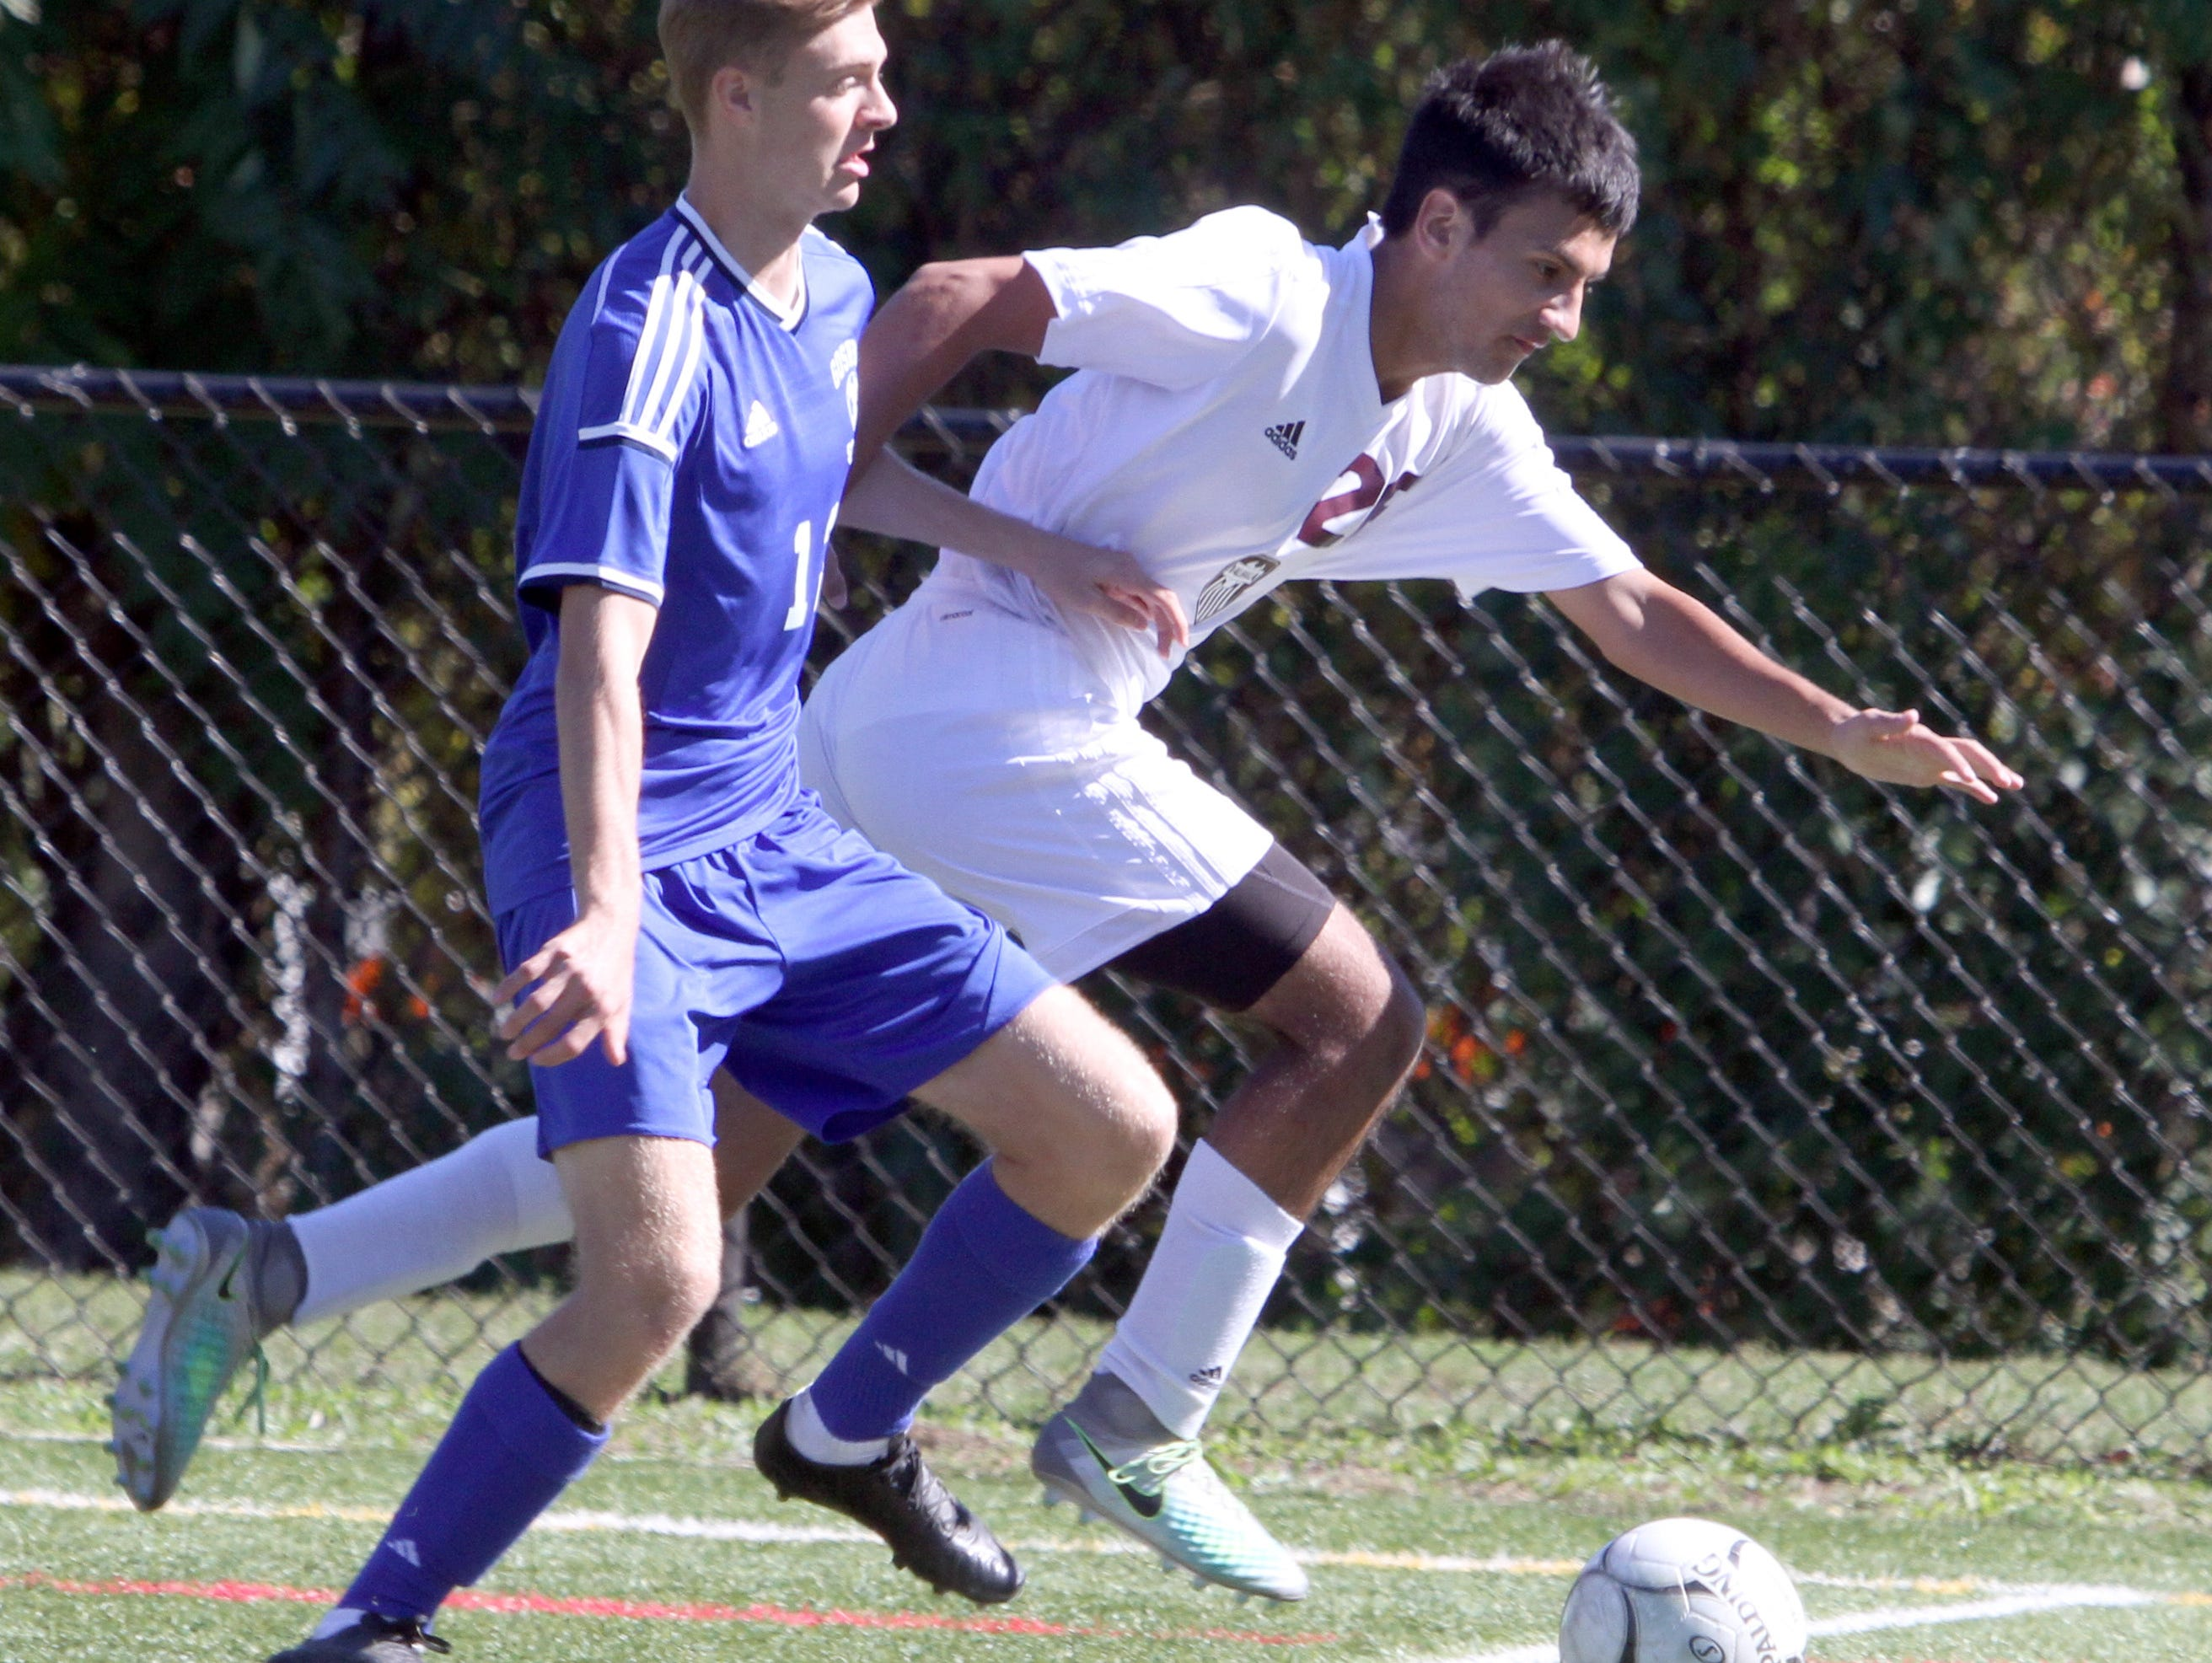 Goshen defeated Valhalla 1-0 in overtime during the Section 1 vs. Section 9 boys soccer challenge at Mamaroneck High School Oct. 10, 2016.